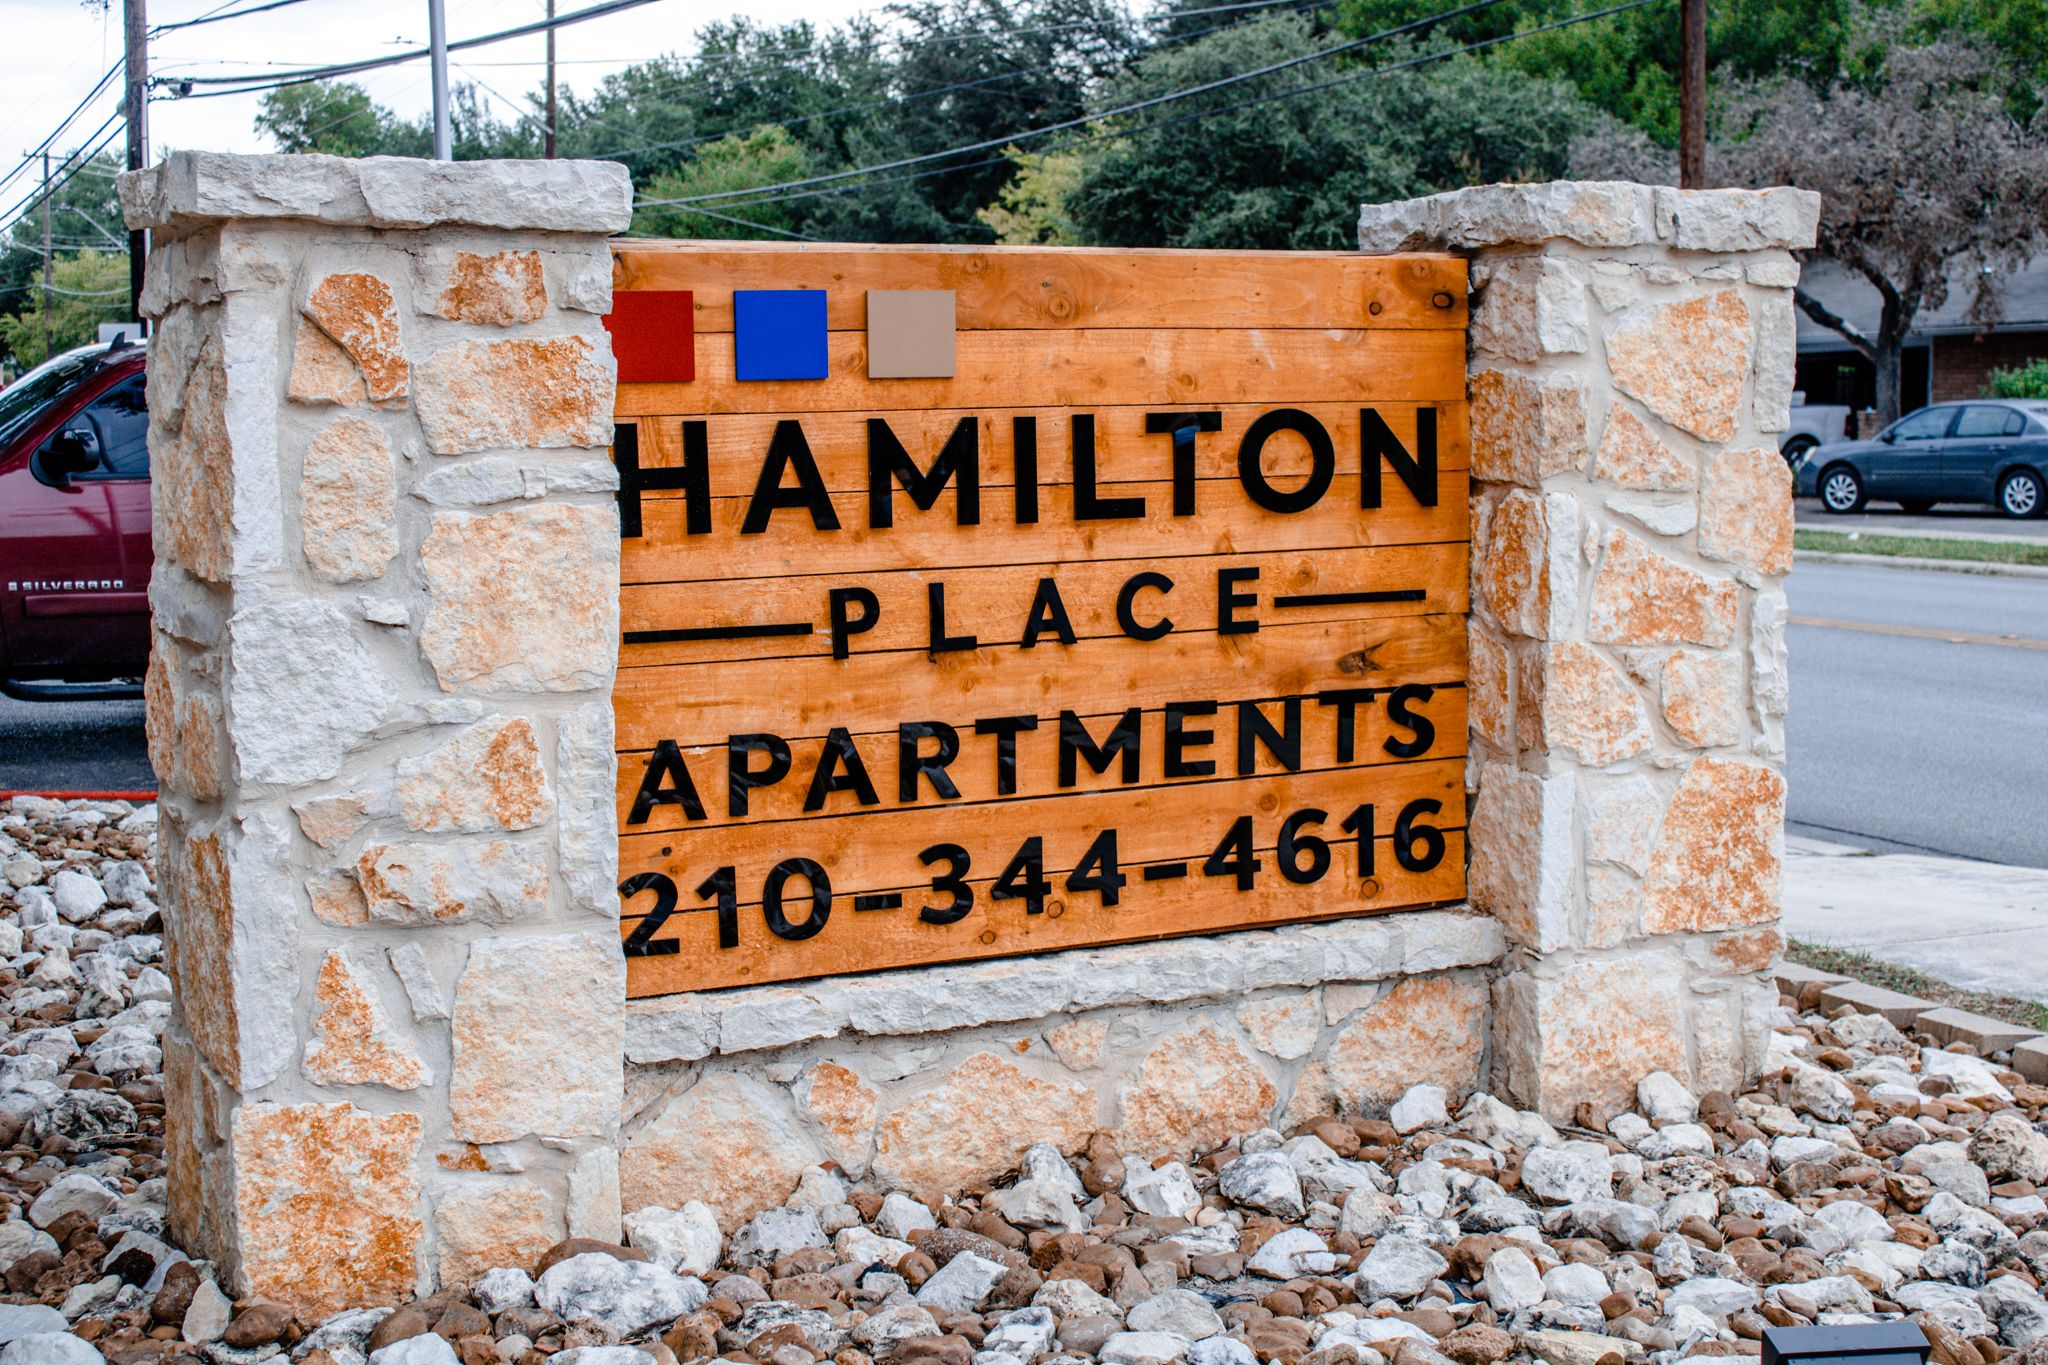 Hamilton Place Apartments